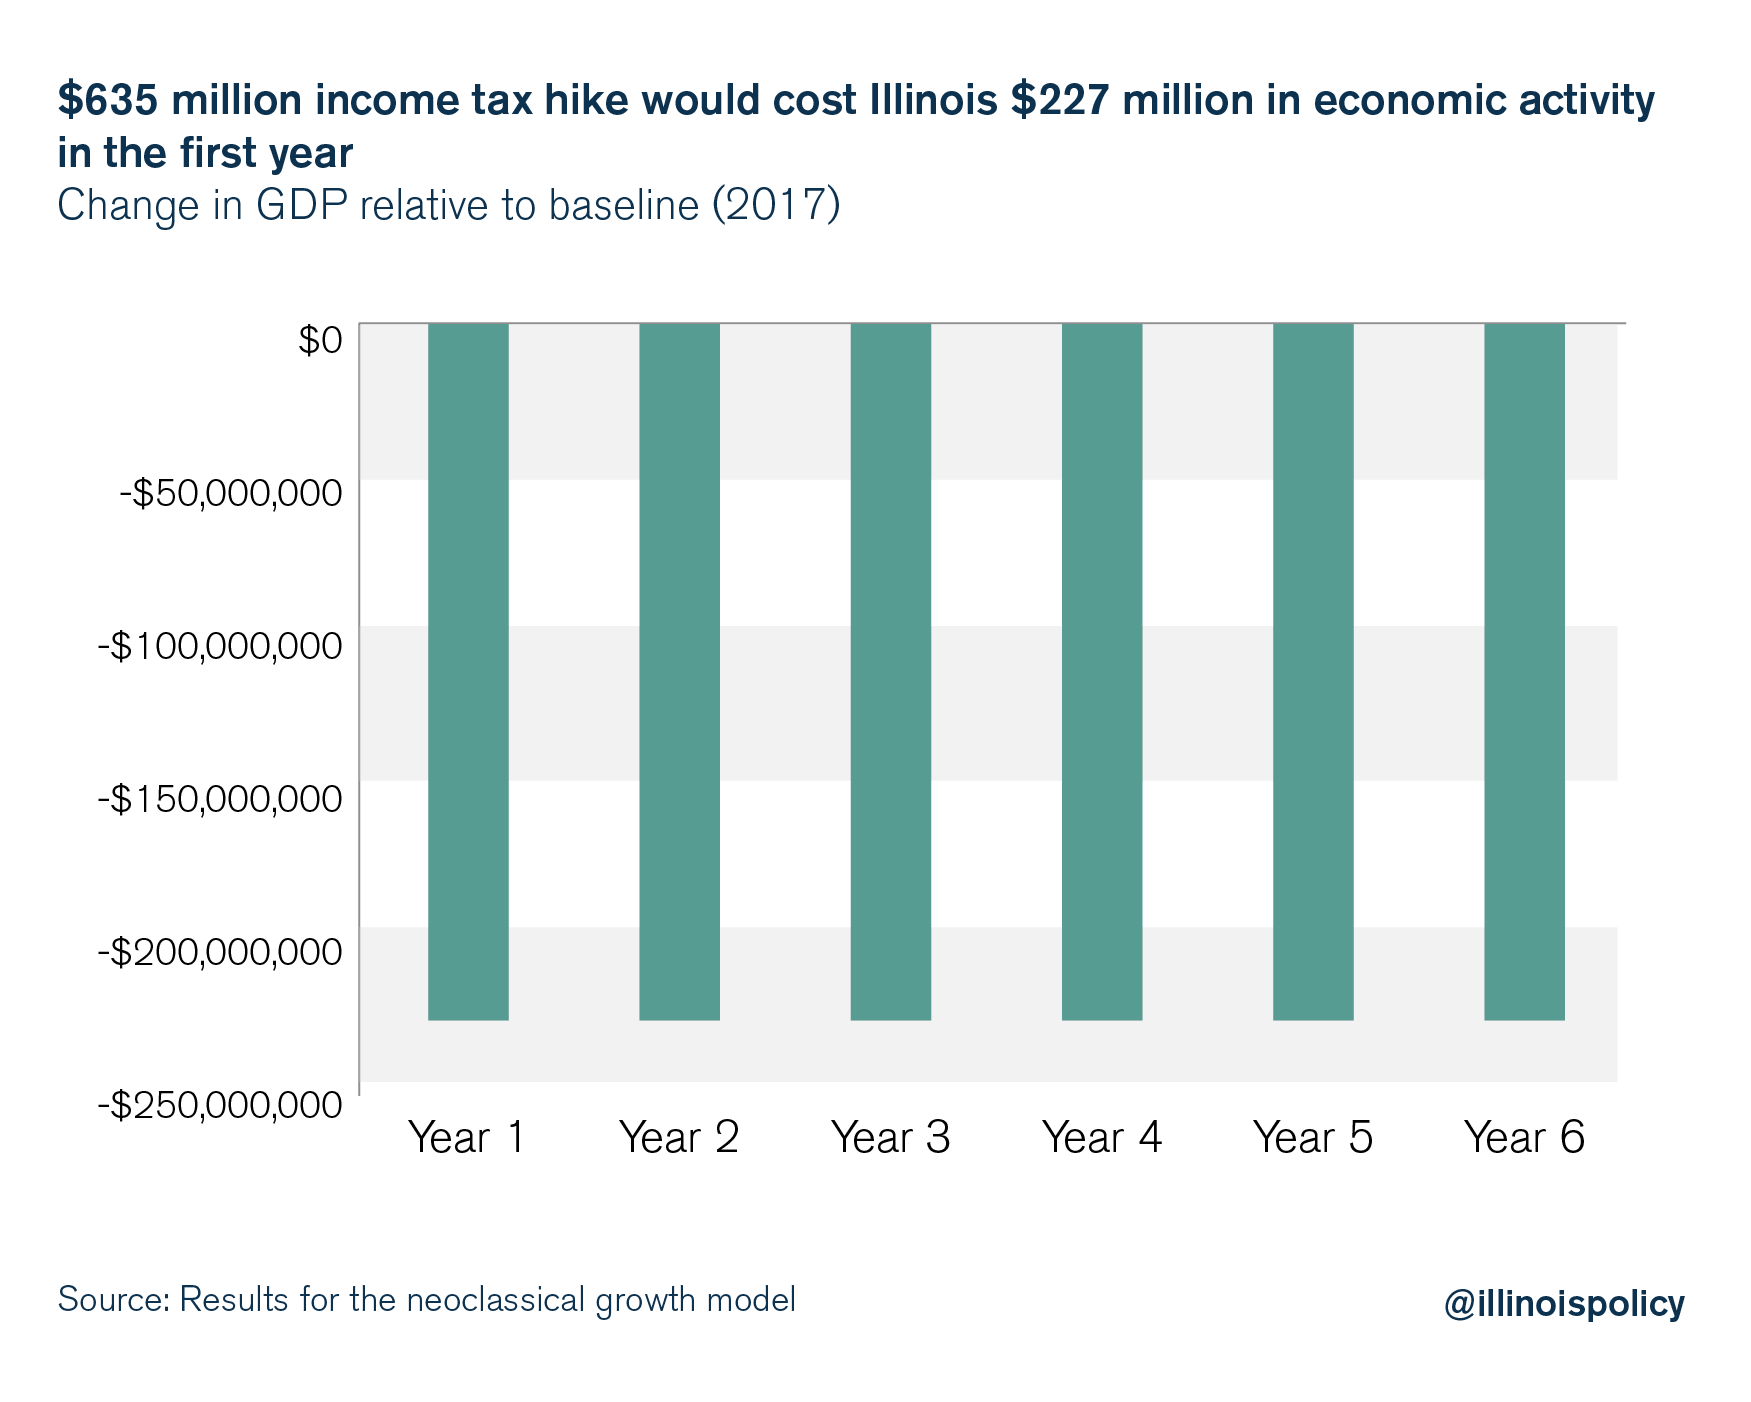 $635 million income tax hike would cost Illinois $227 million in economic activity in the first year